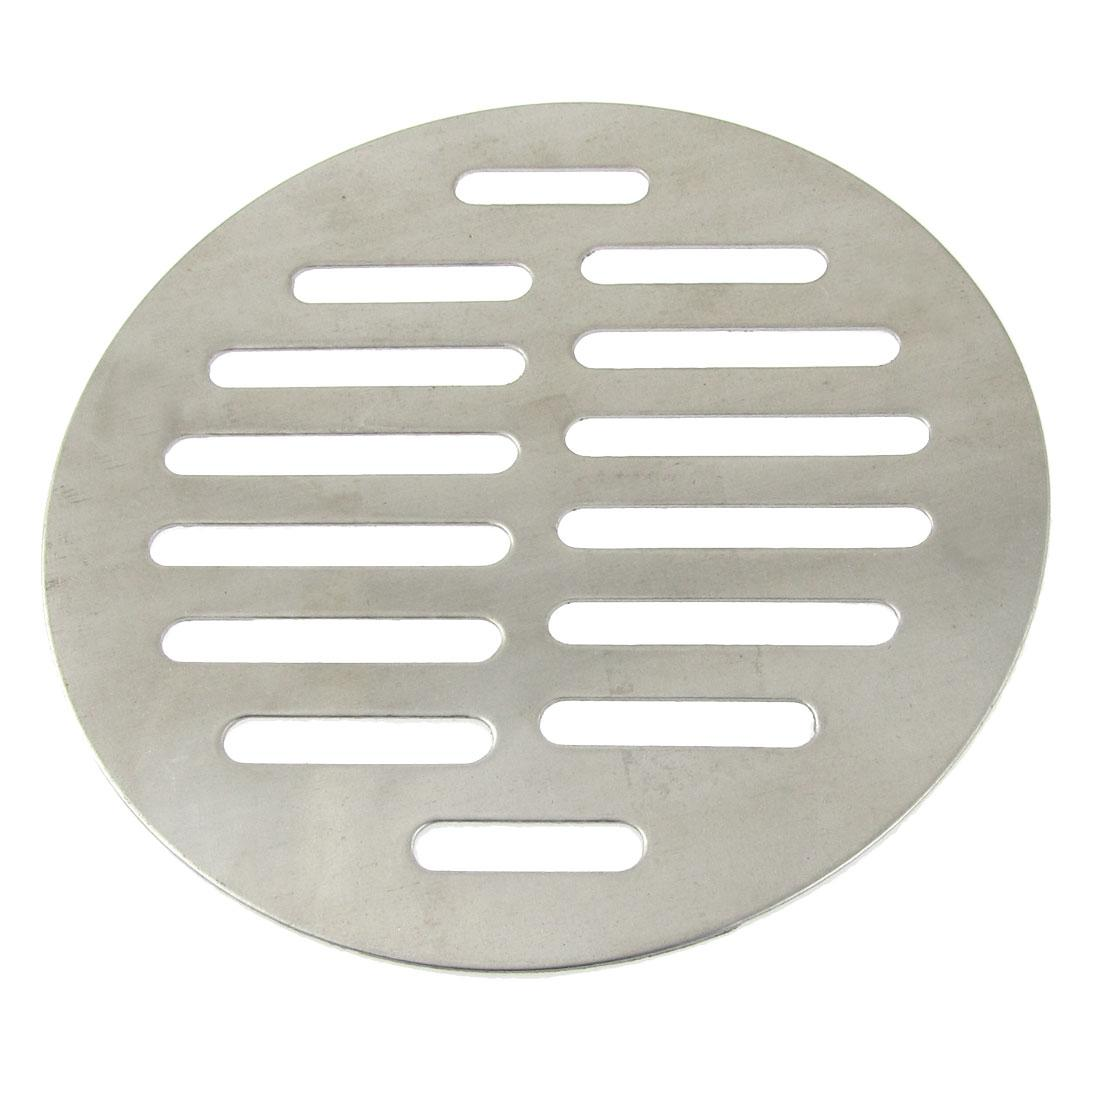 2018 Home Bathroom 14 Holes Round Stainless Steel Floor Drain Cover From  Ux168car, $4.78 | Dhgate.Com